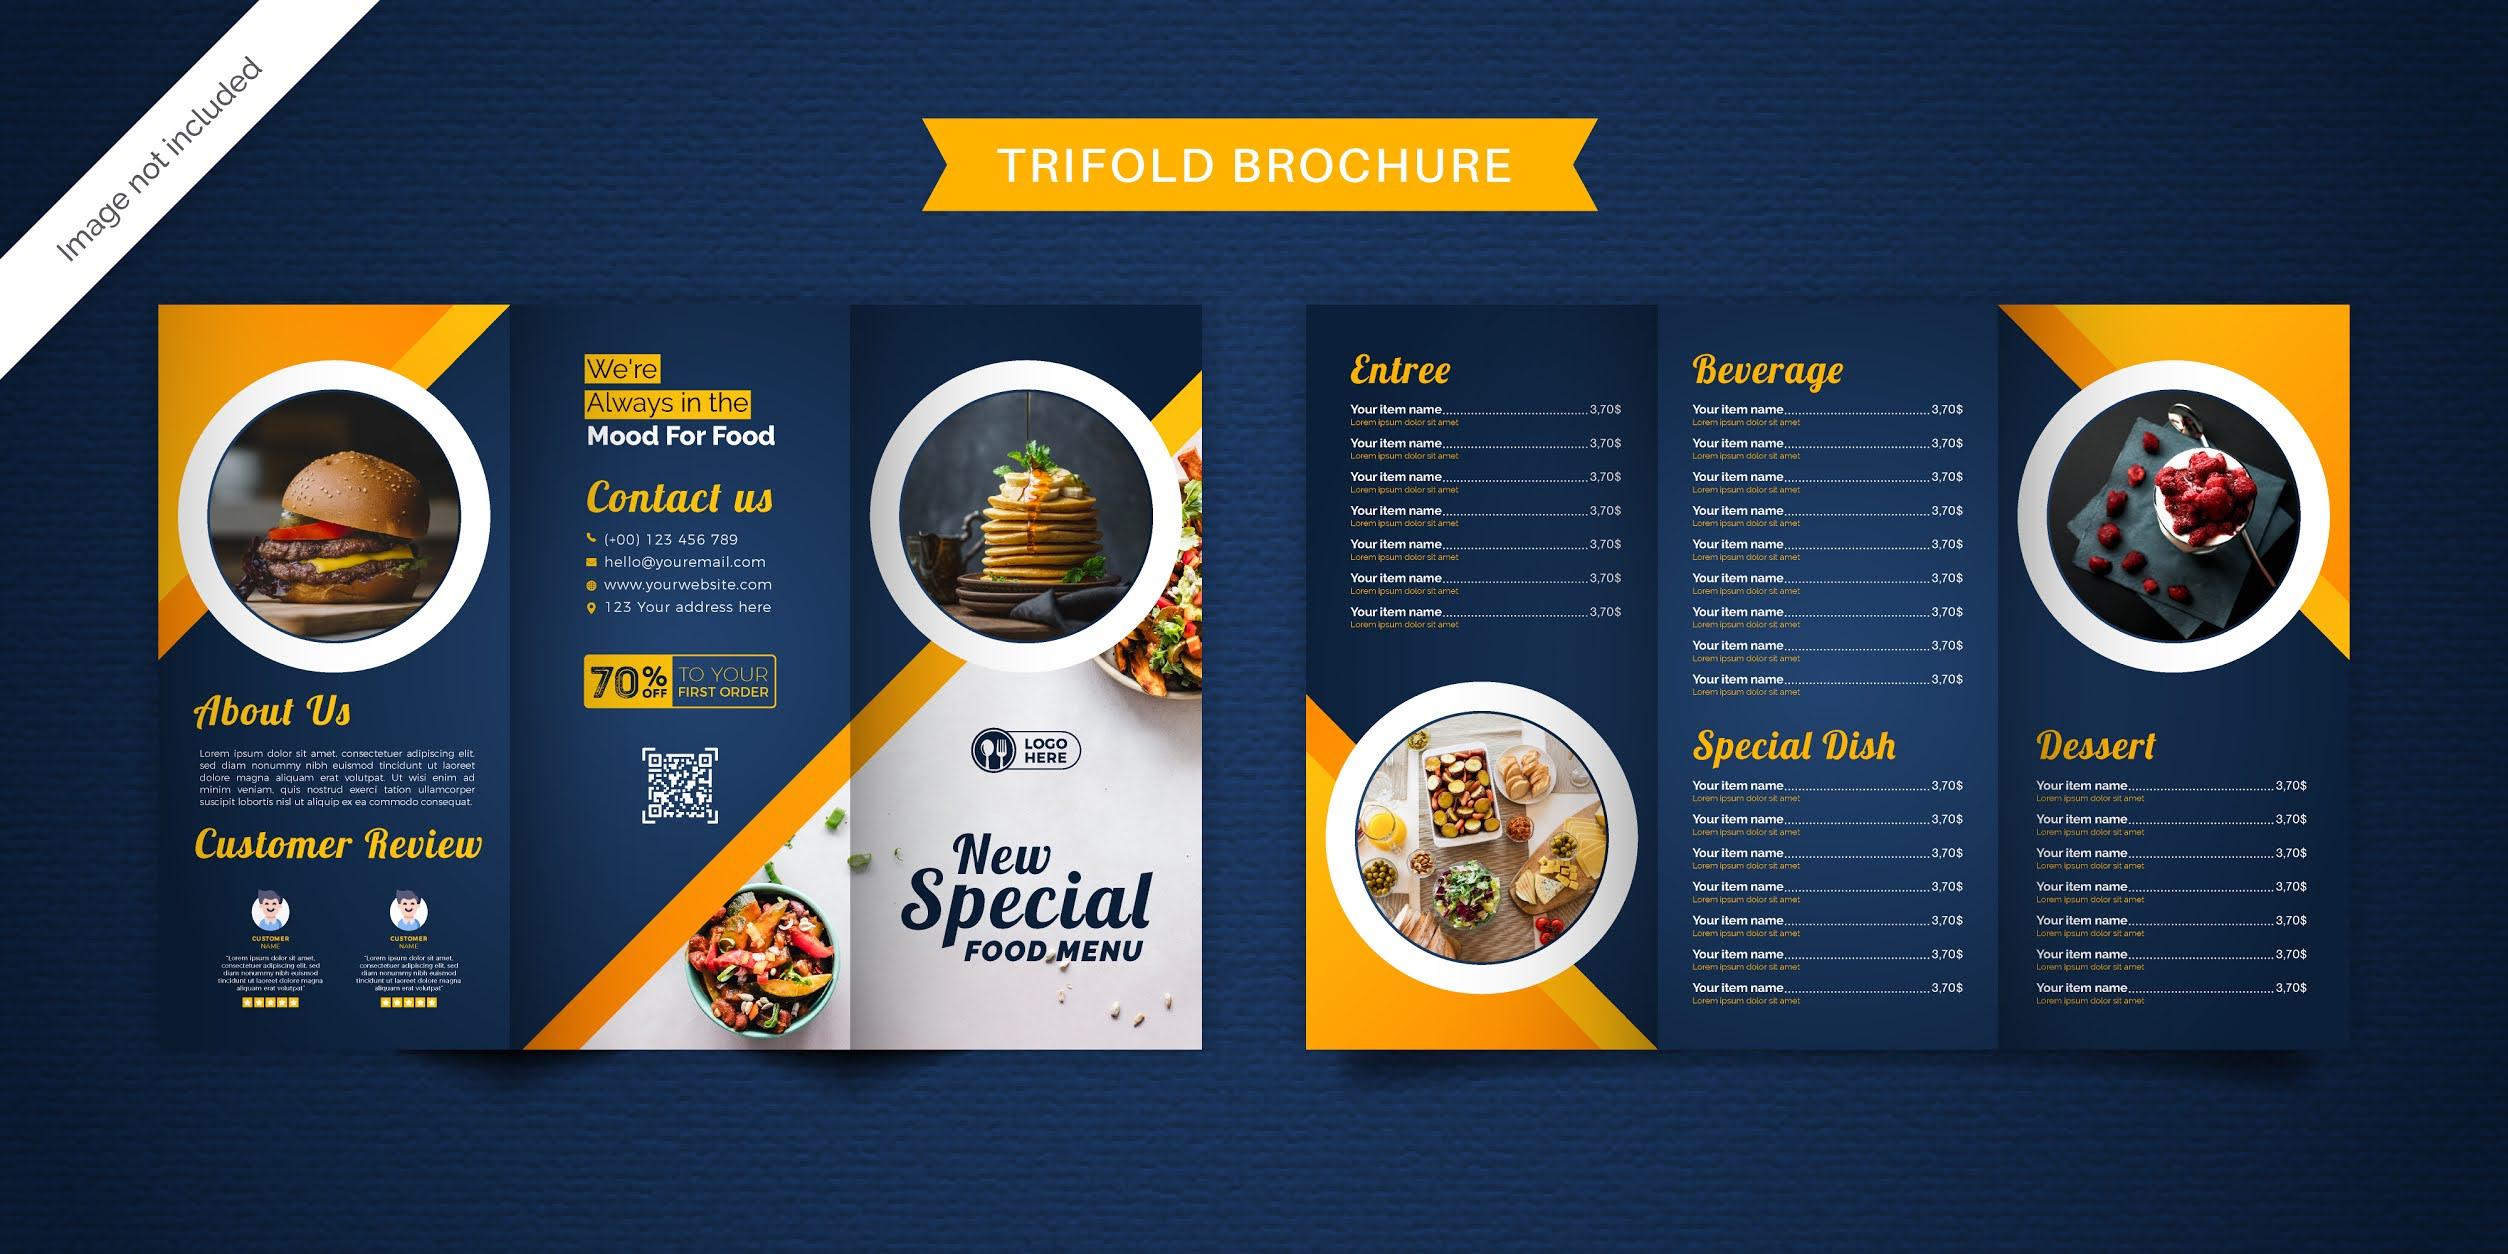 Free download food brochure 7 professional designs 1 set in vector format